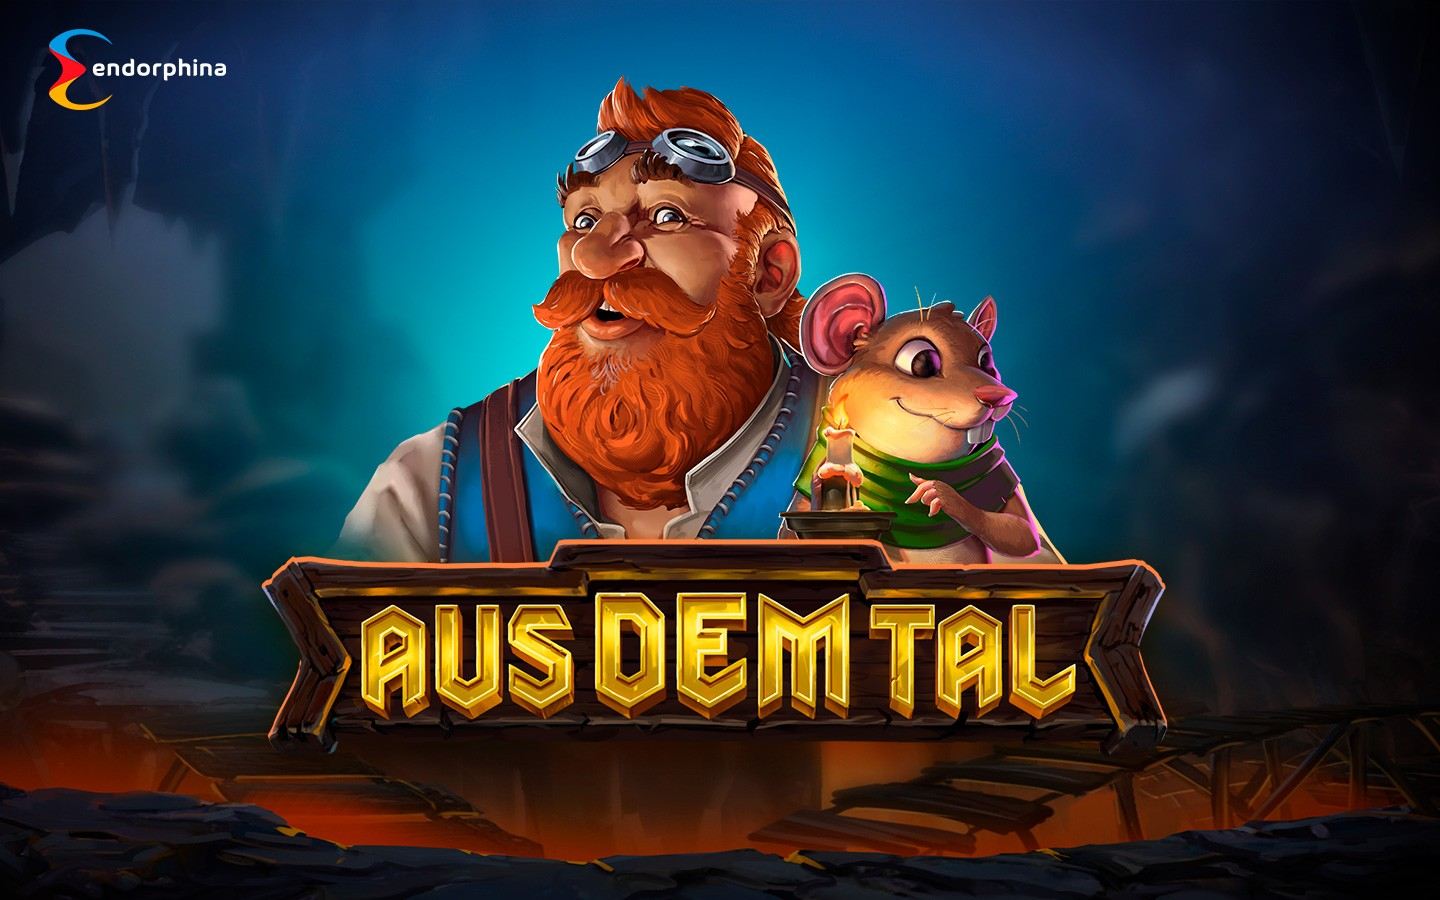 TOP ADVENTURE SLOTS OF 2020 | Try Aus Dem Tal slot now!